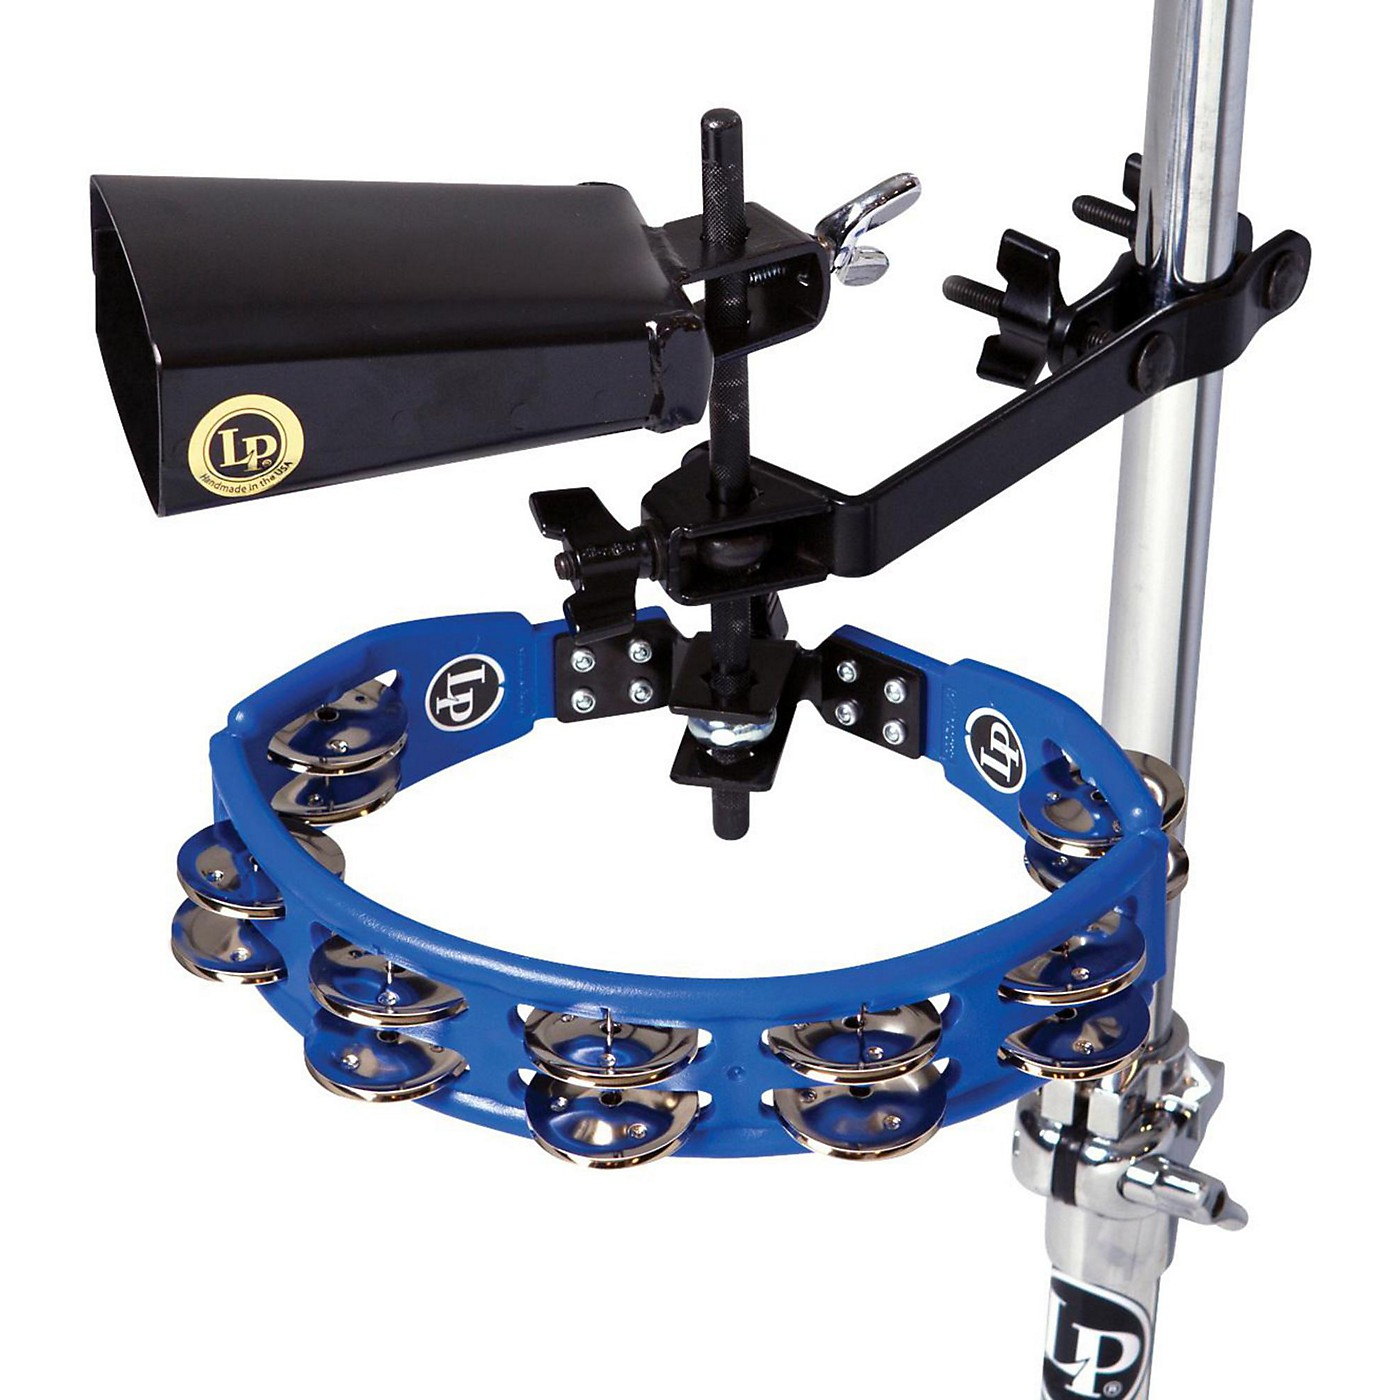 LP Tambourine and Cowbell with Mount Kit thumbnail